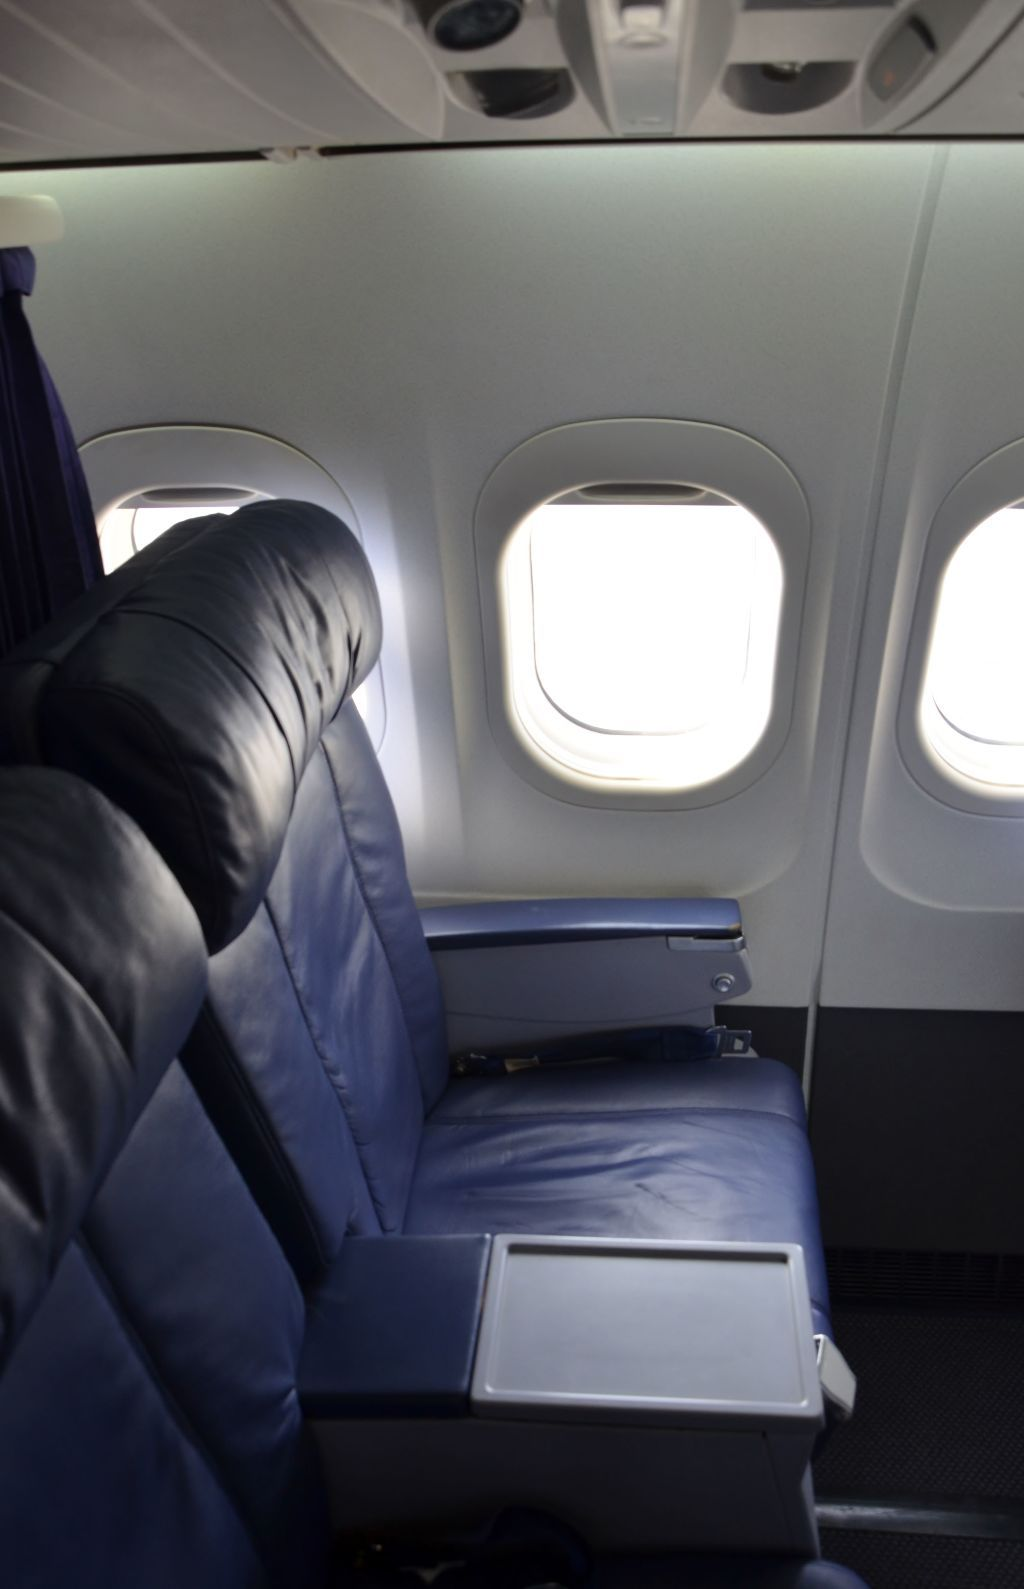 Hawaiian Airlines Boeing 717 200 First Class Cabin 2 2 Seats Photos Hawaiian Airlines Airplane Interior Airlines